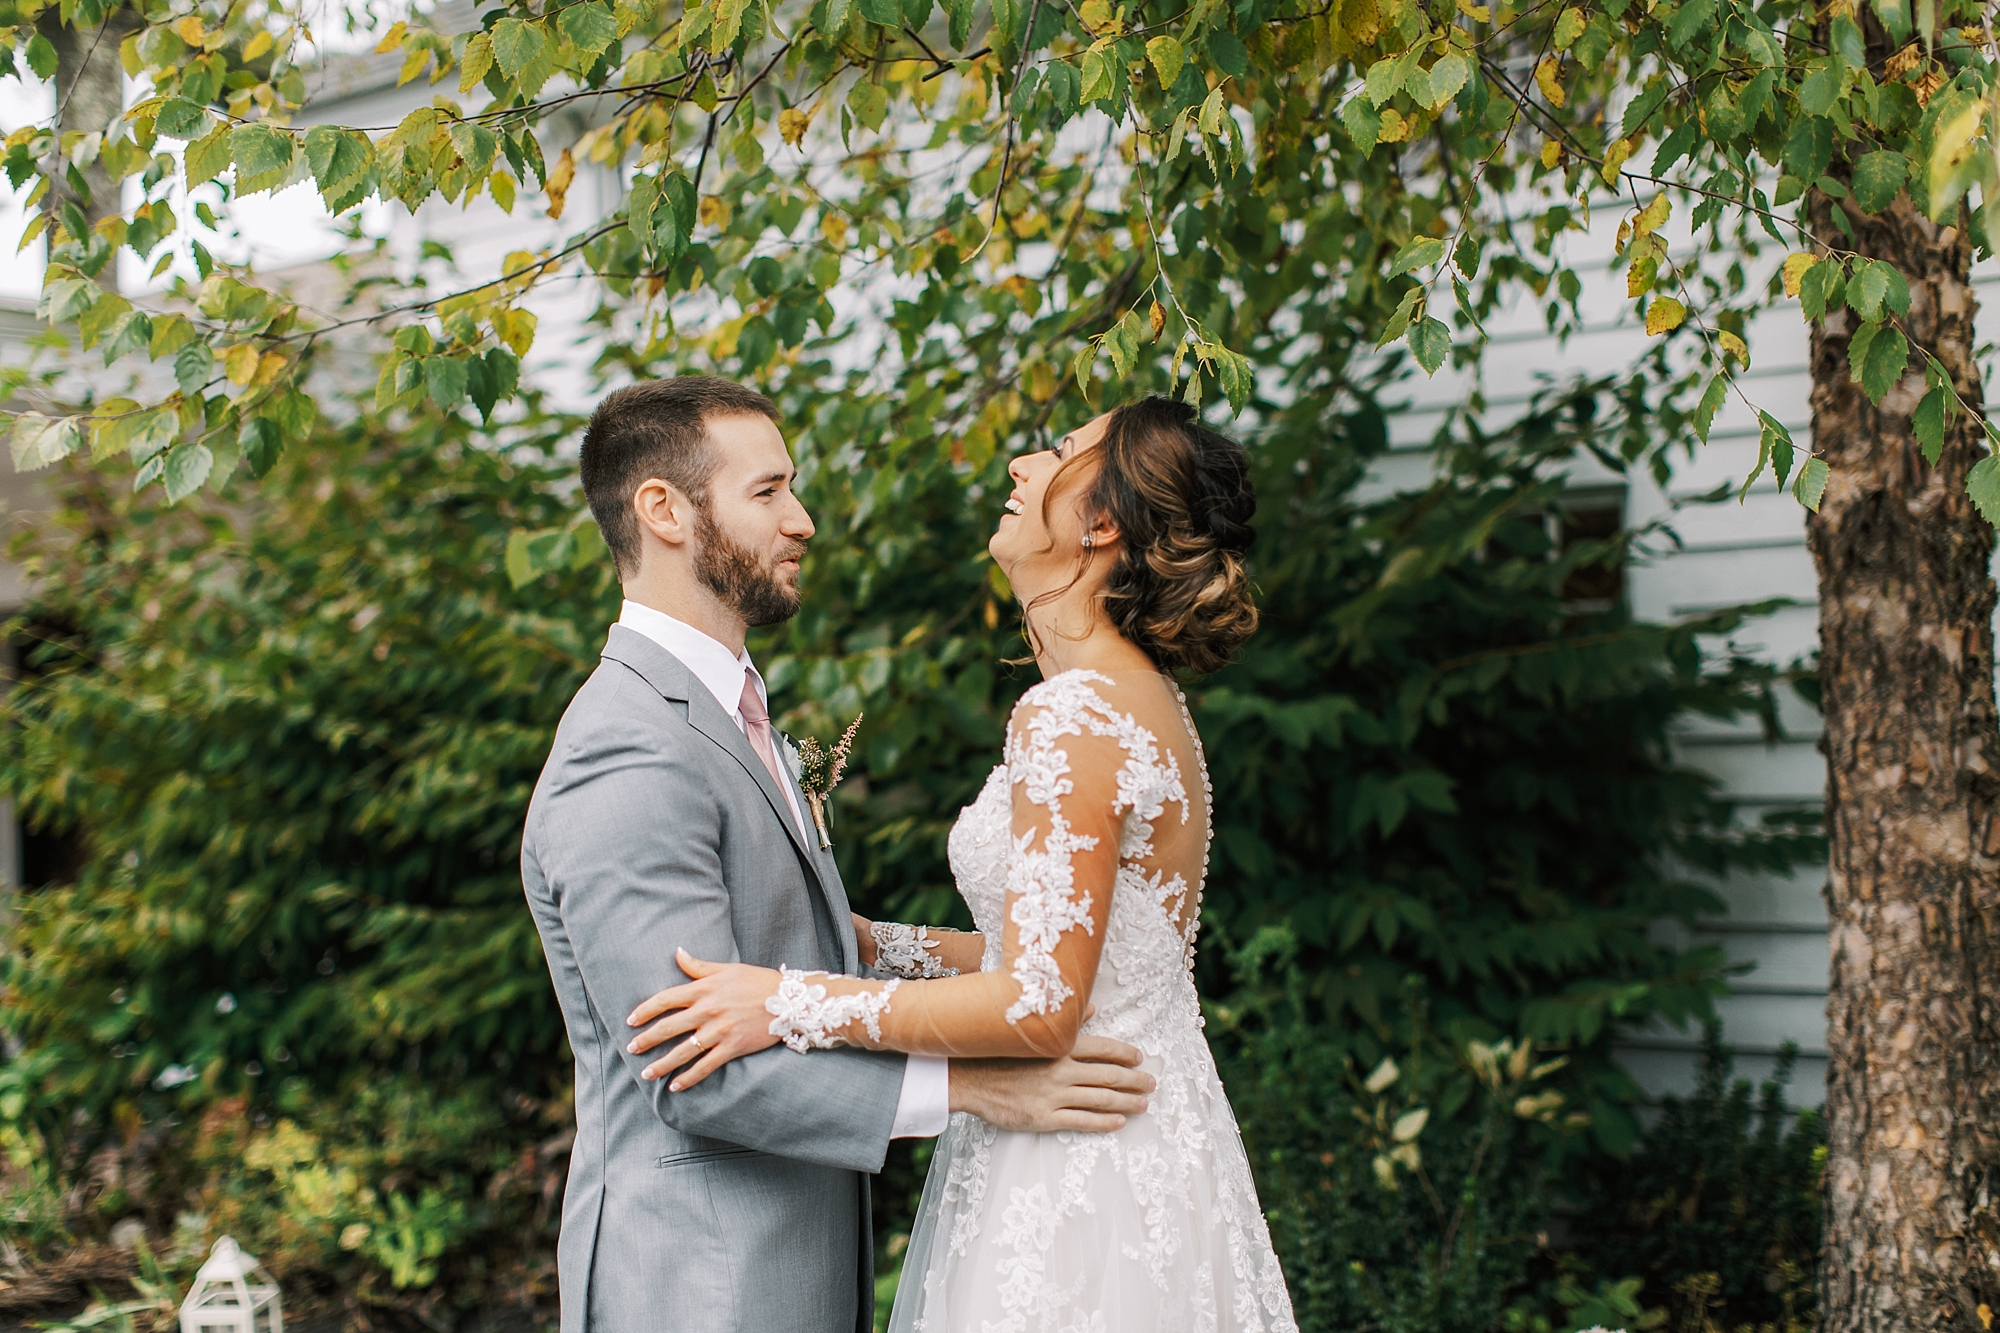 Sweet Garden Wedding Photography Abbie Holmes Estate in Cape May NJ by Magdalena Studios 0025